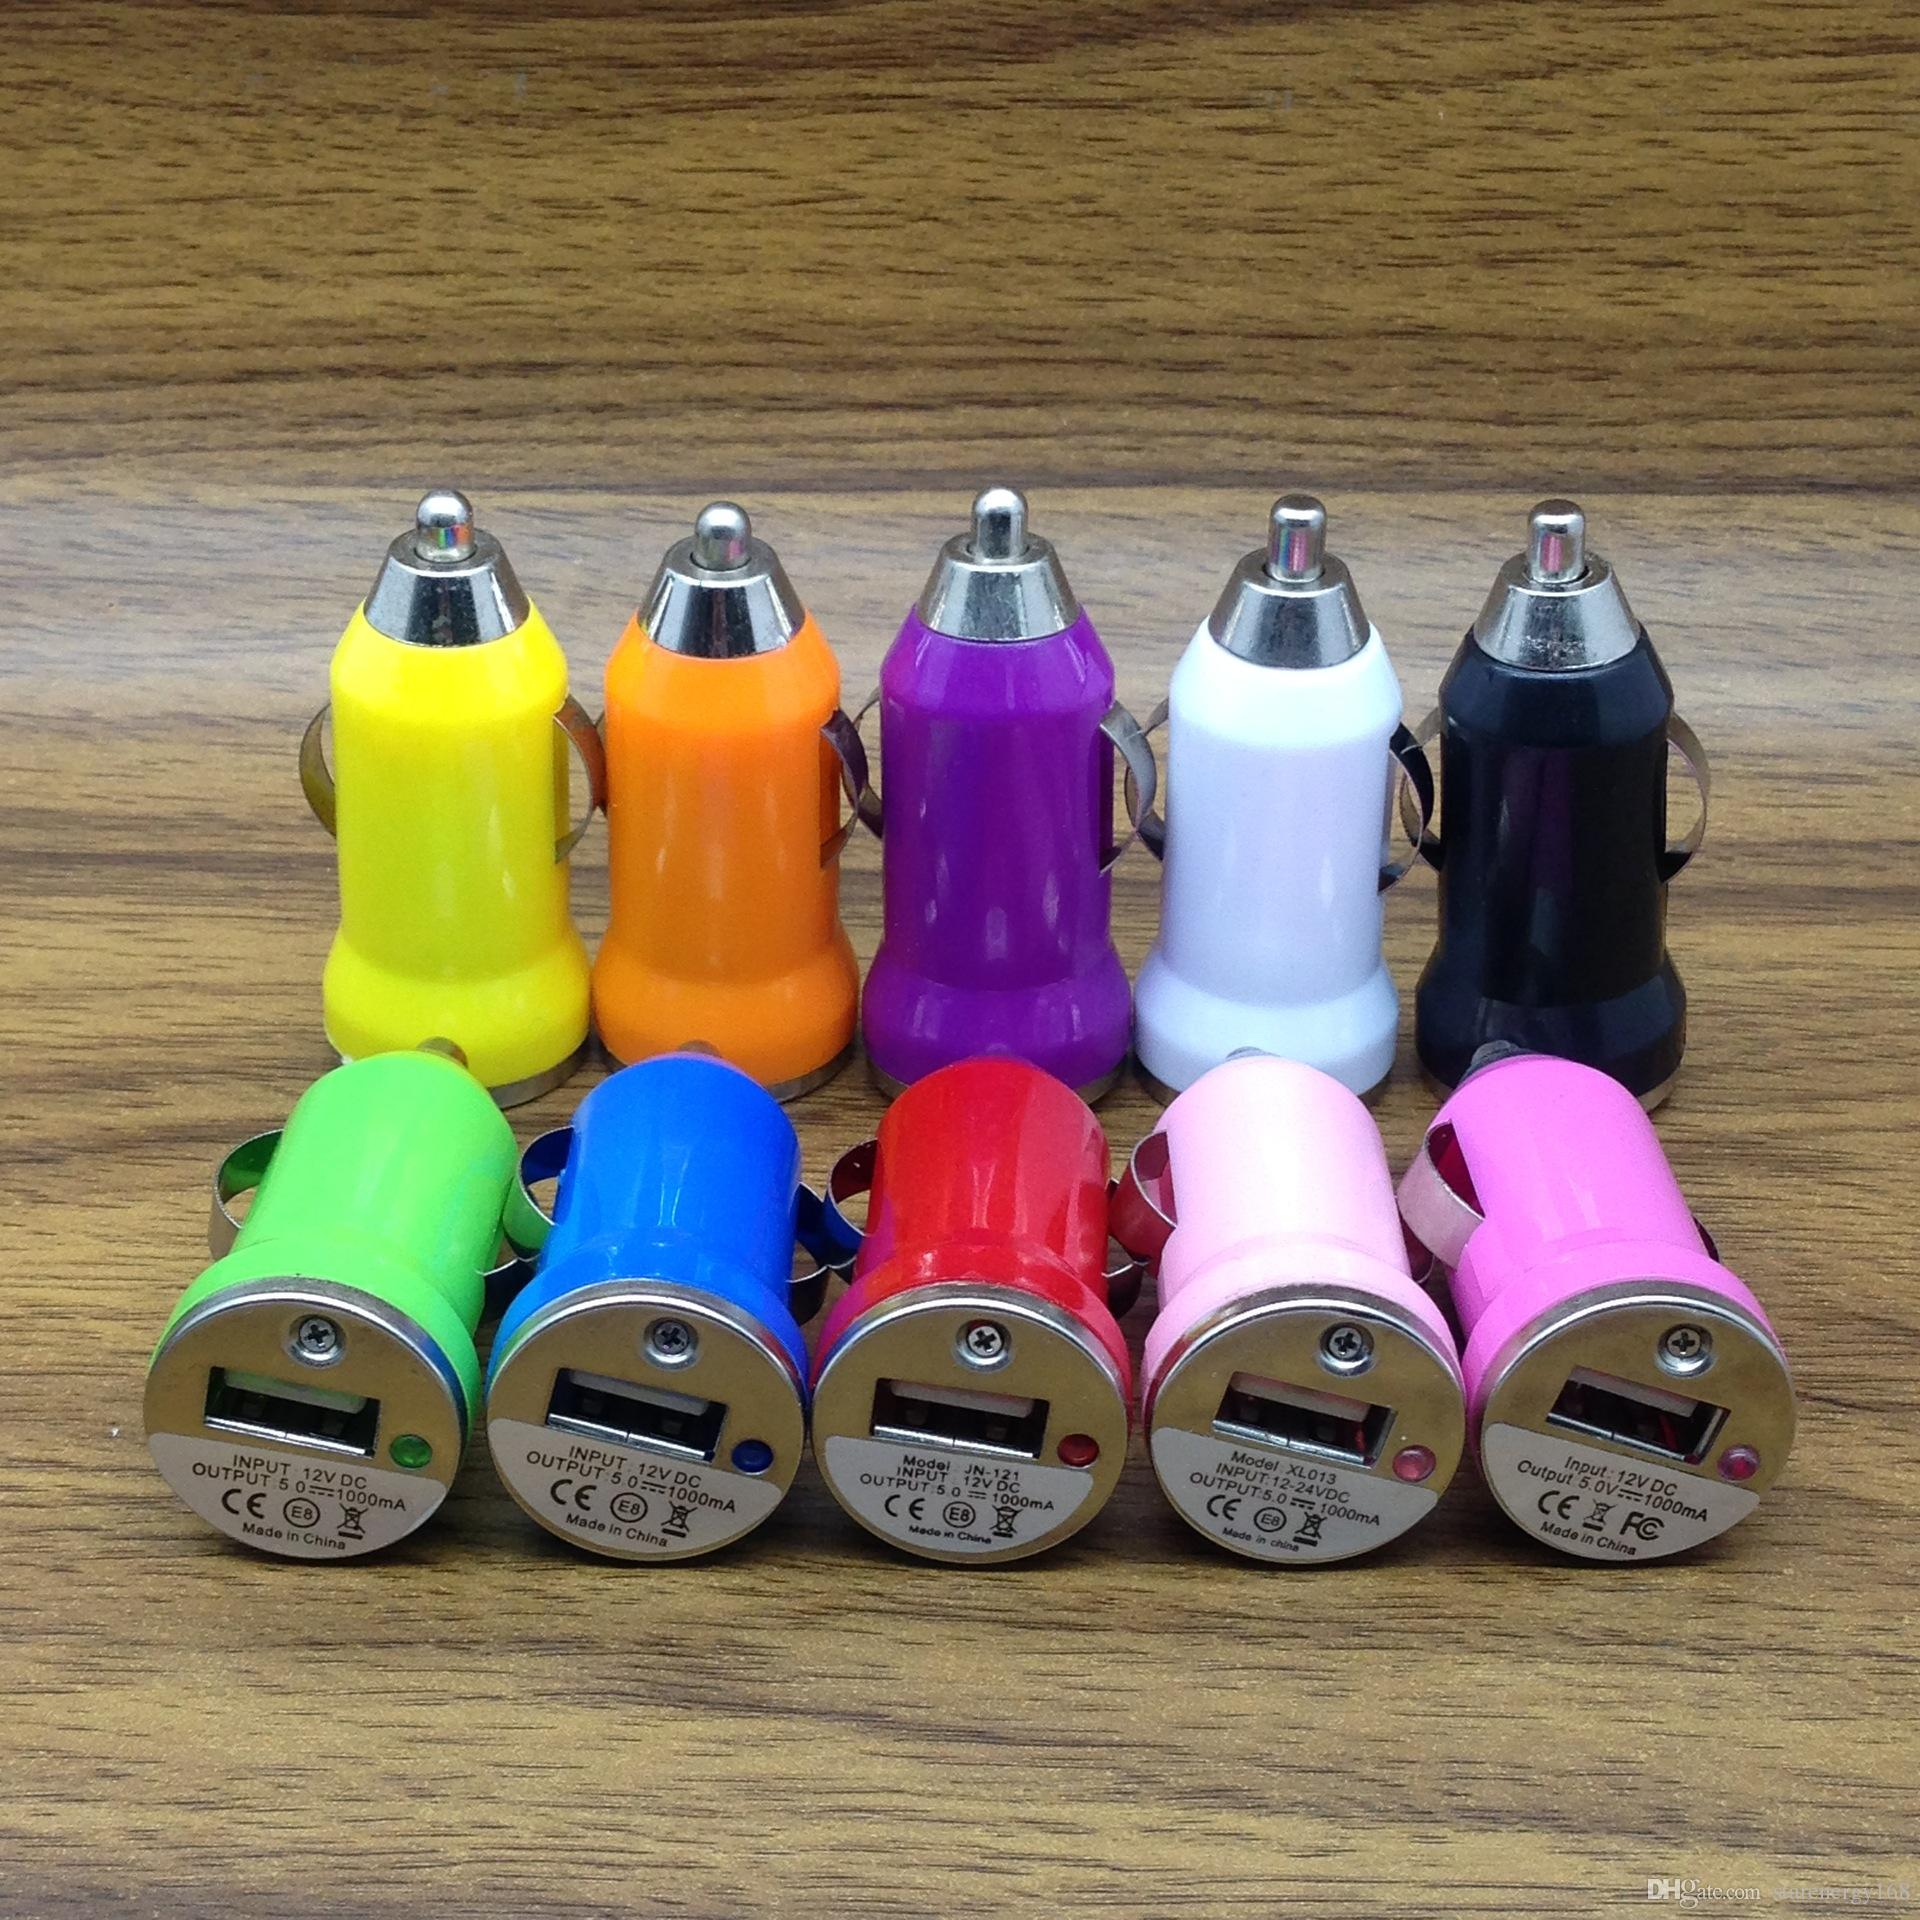 168 Mini single USB car charger Universal car socket use adapter bullet style for smart phone B-CL